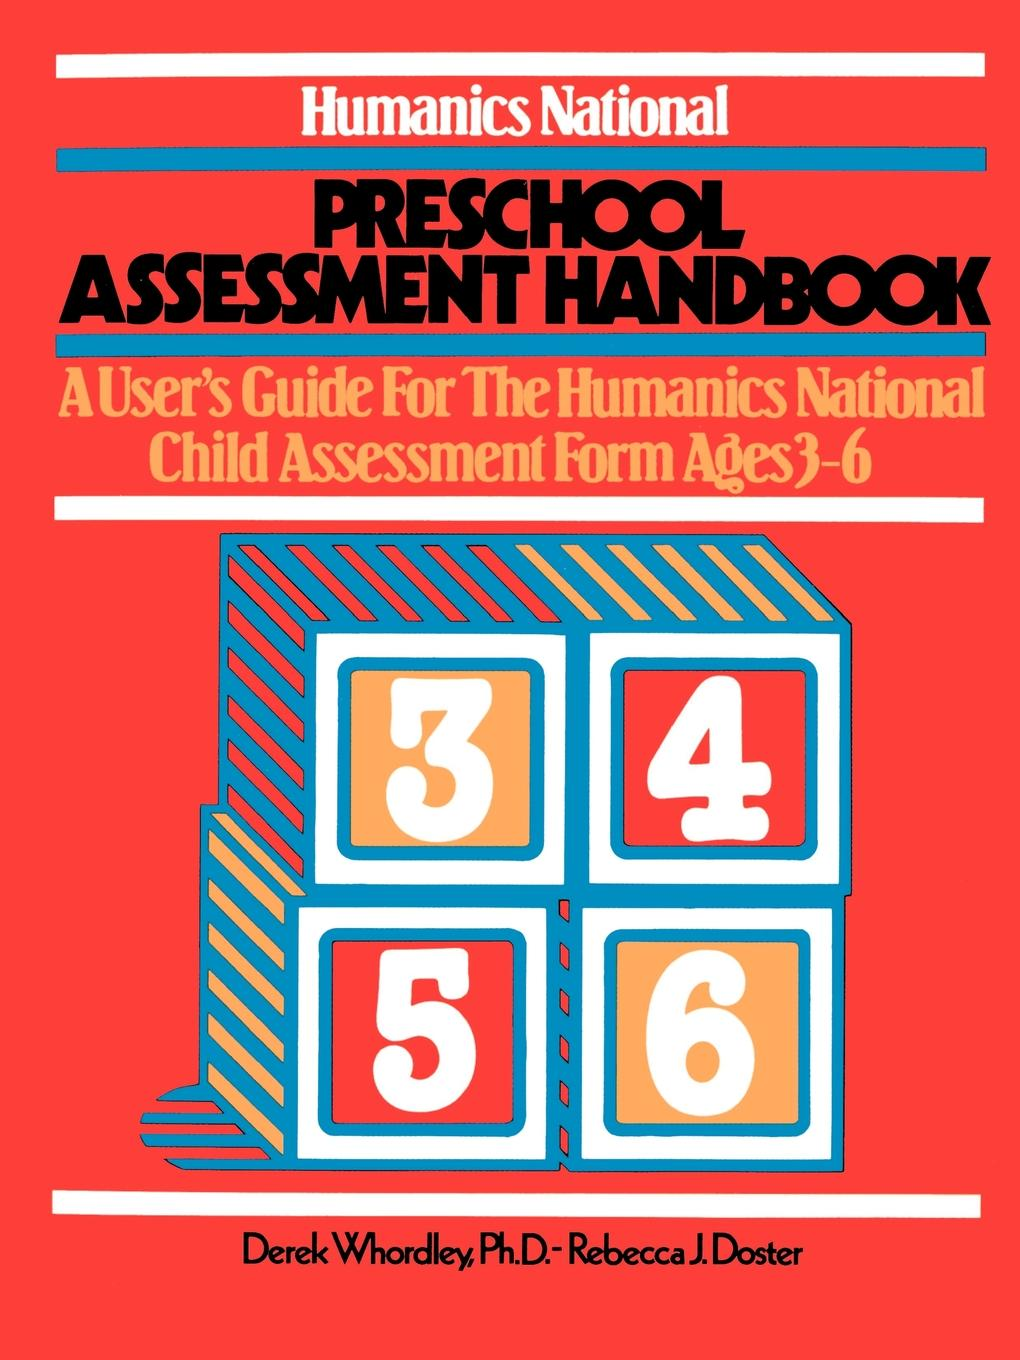 Humanics National Preschool Assessment Handbook By: Derek Whordley, Ph.D.